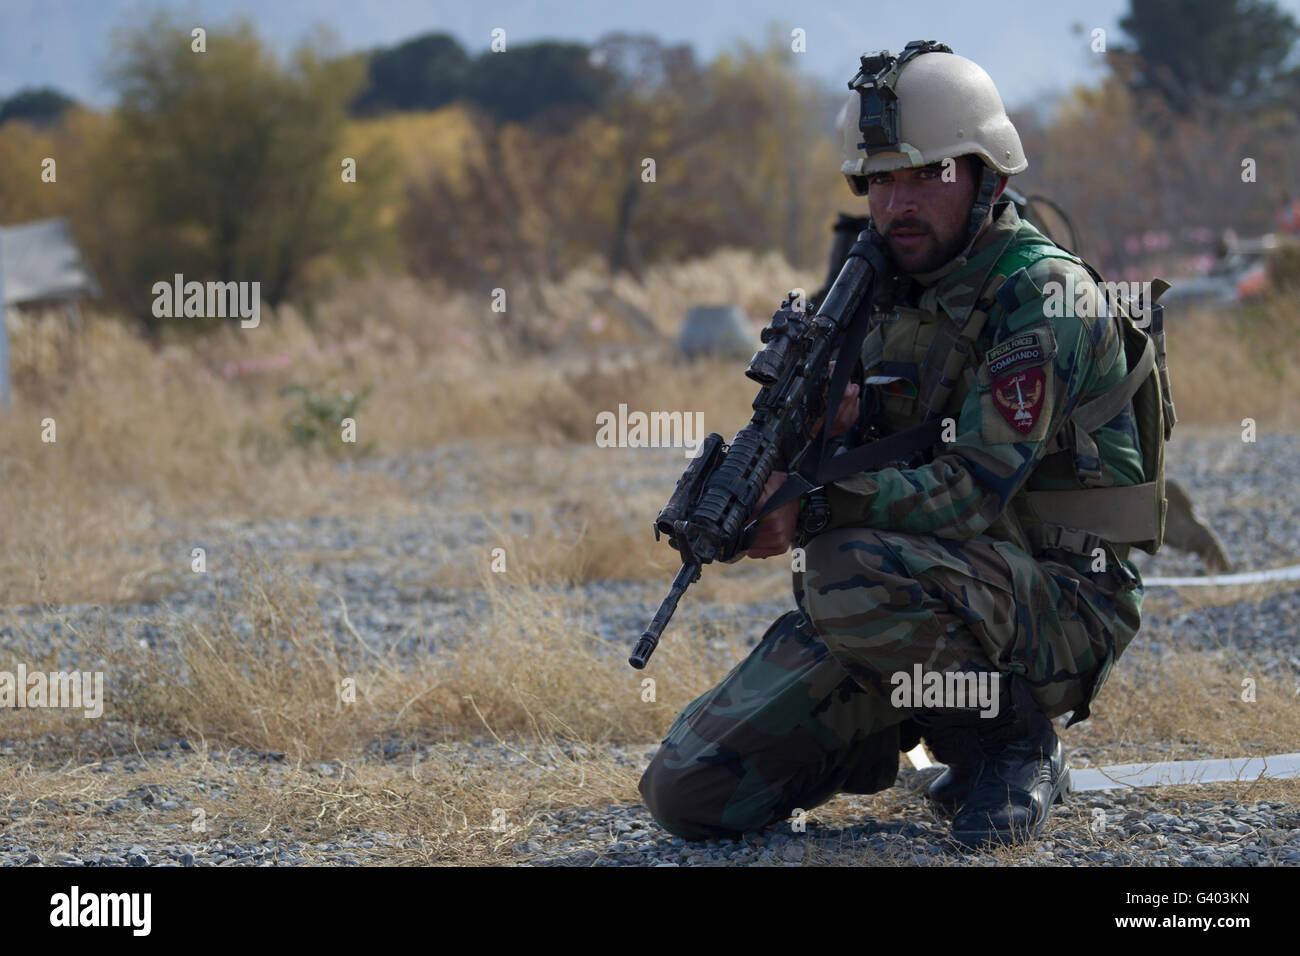 n Afghan National Army Special Forces member. - Stock Image